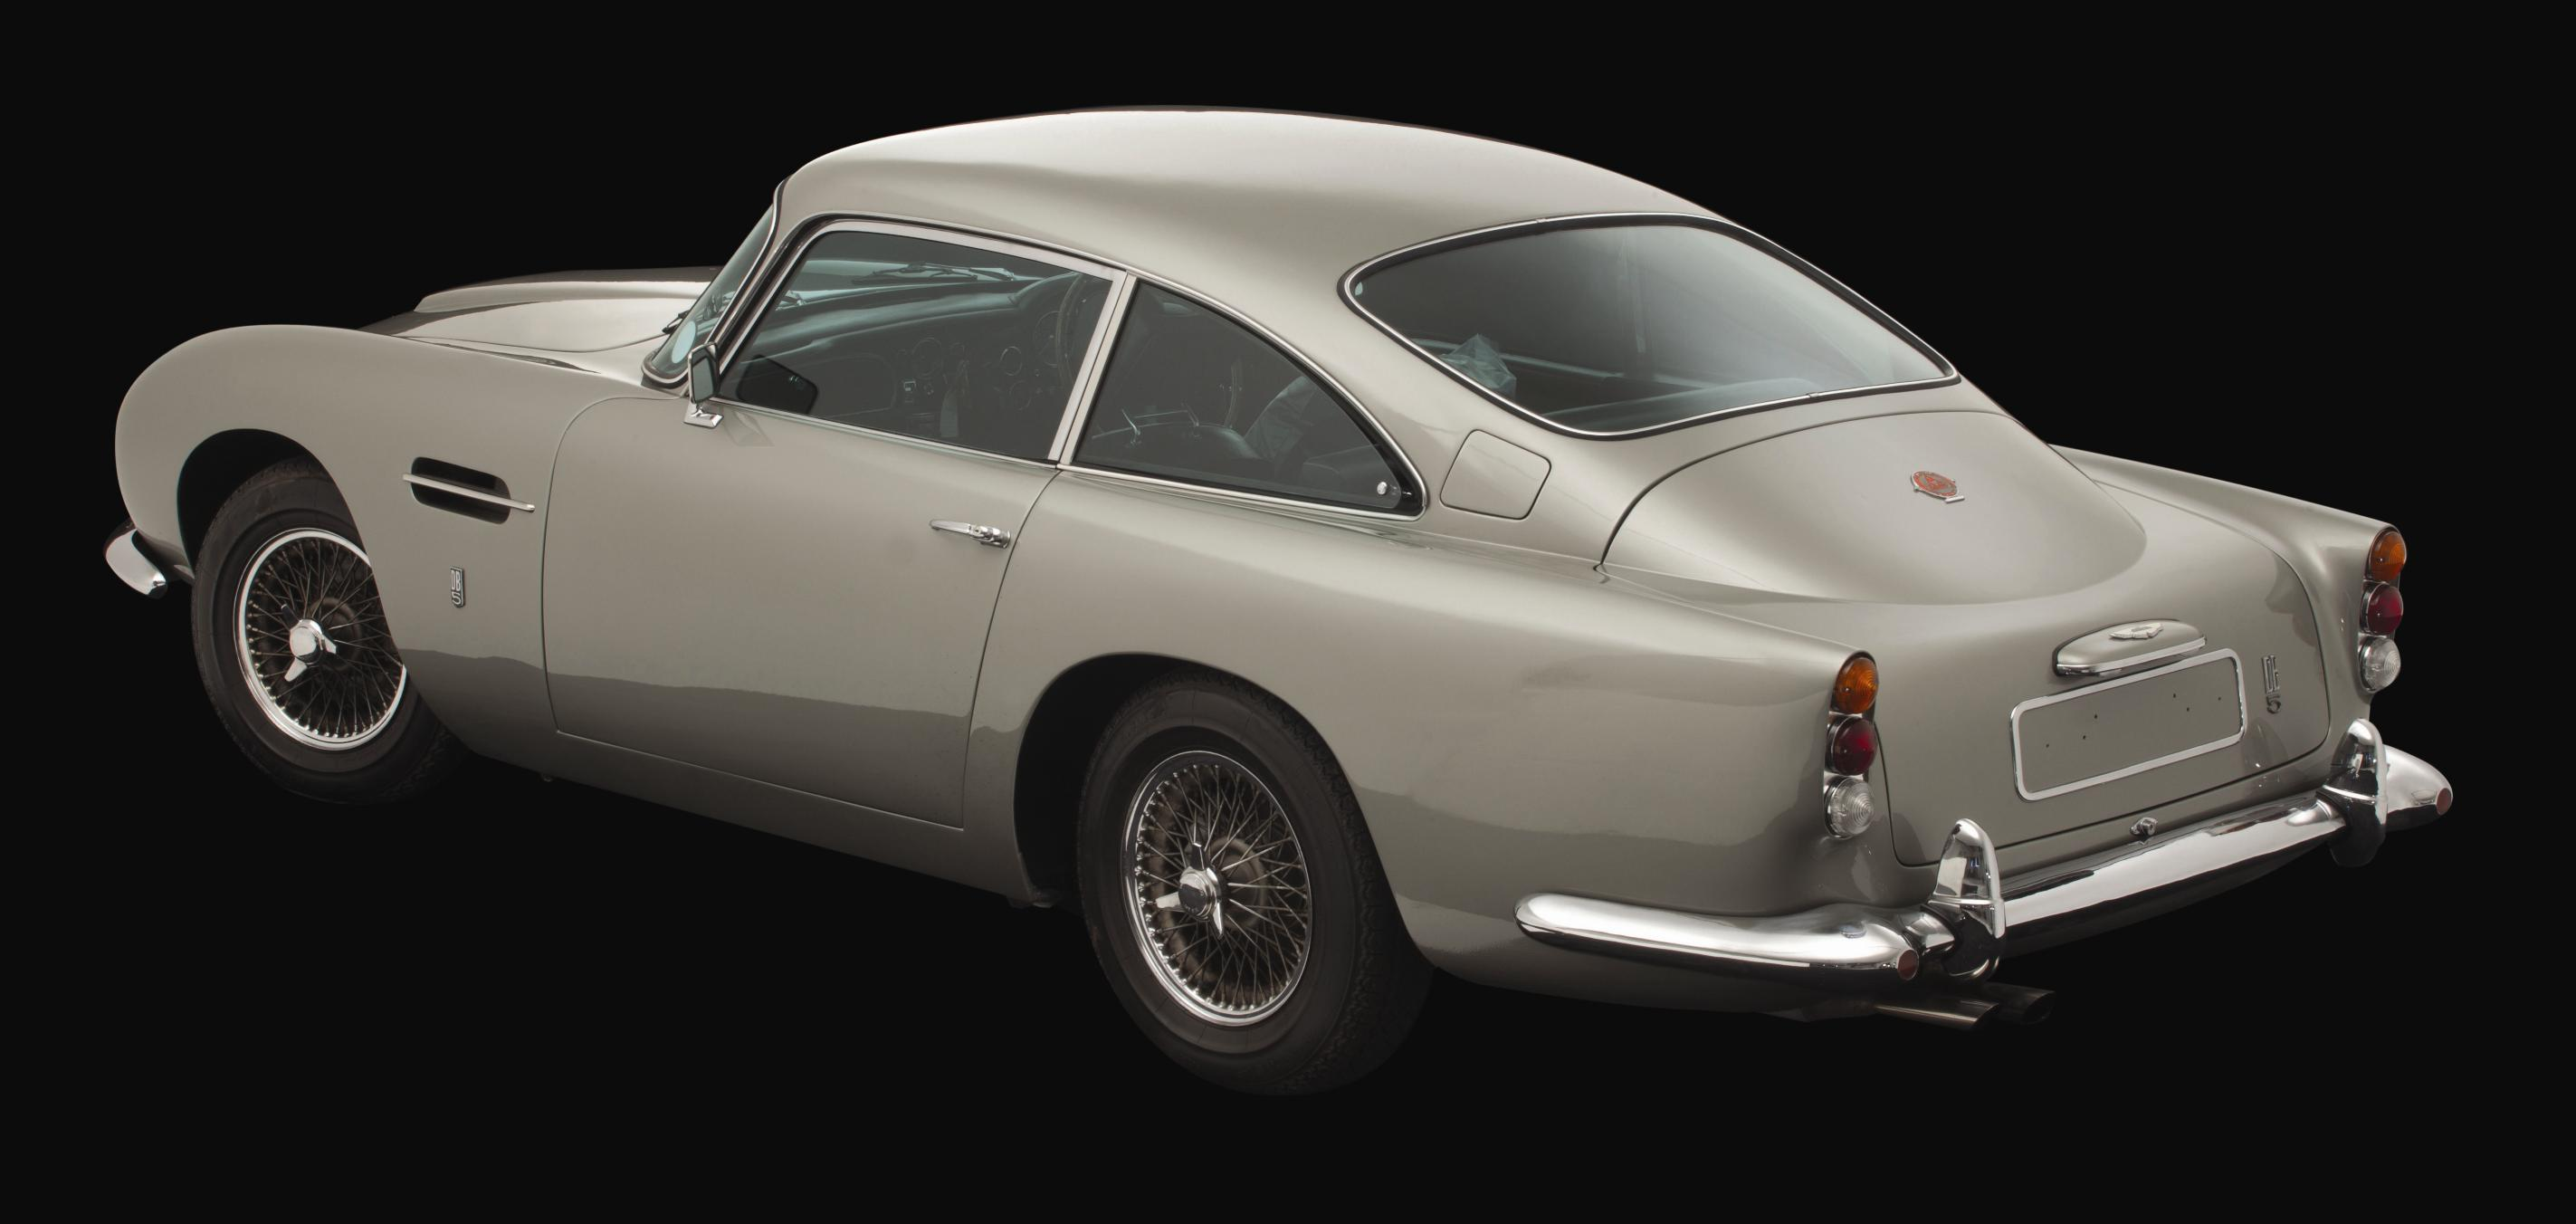 George Harrison S Aston Martin Db5 Sells For 163 350k